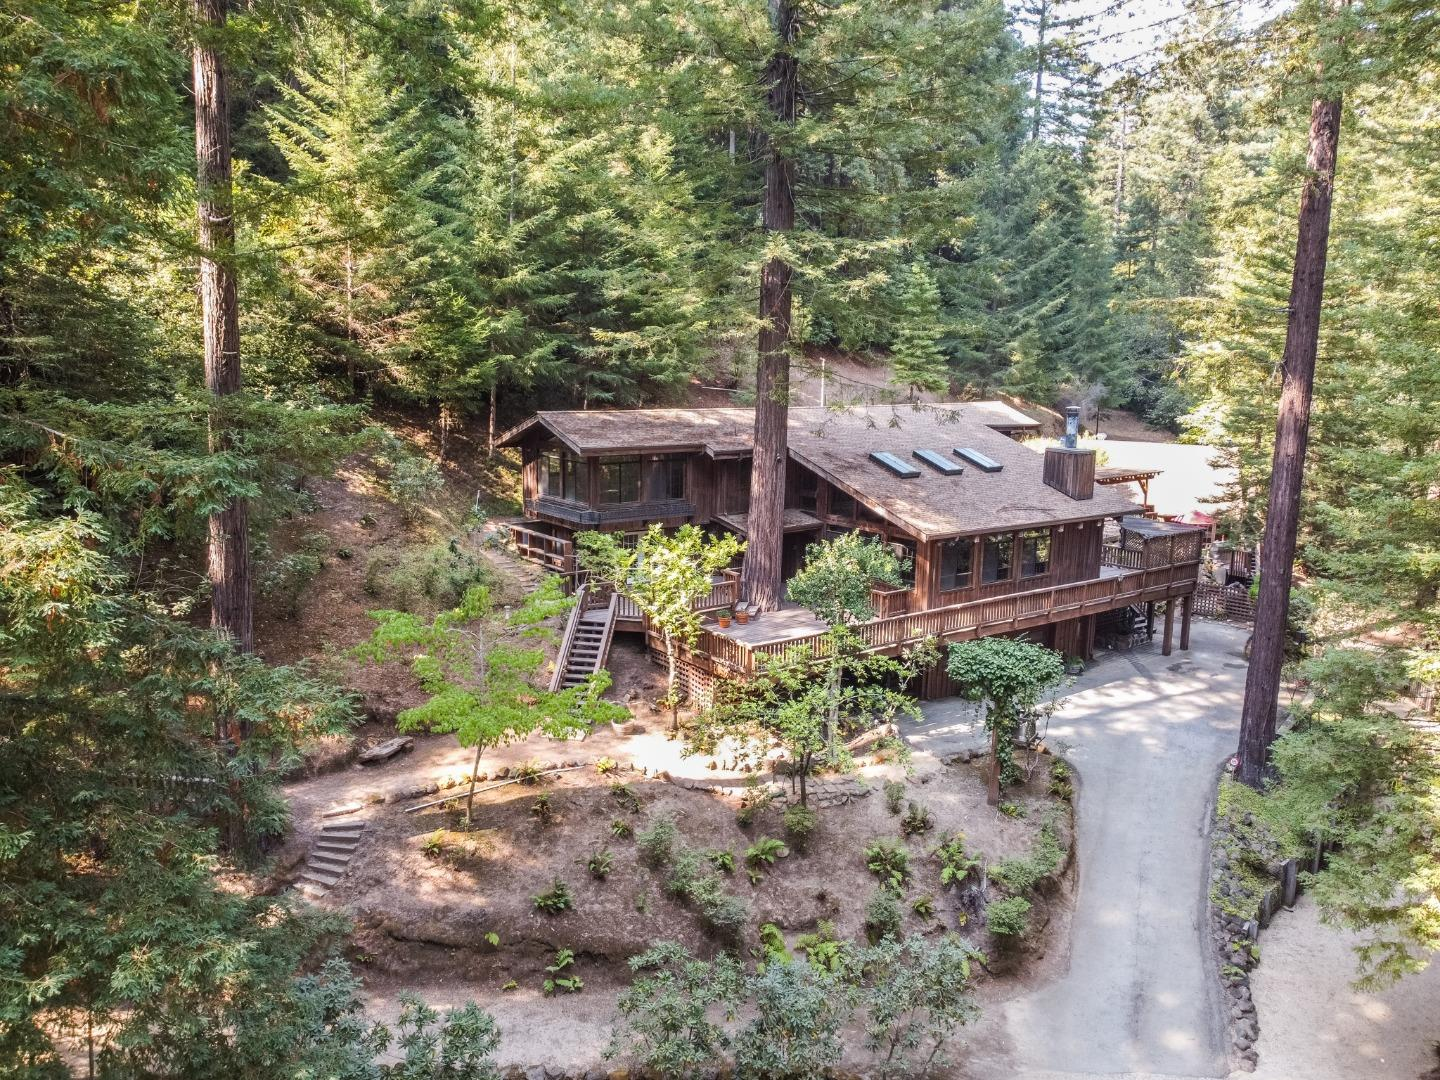 """Once in a lifetime opportunity to own 200+ acres in the Santa Cruz Mountains. After serving in WWII, Don and his sweetheart, Anne, relished their free time hiking in the Santa Cruz Mountains. In 1953, with 3 growing boys, they purchased a large parcel on Love Creek with the dream of creating a family retreat. For decades, the """"Cabin,"""" as family affectionately called it, became a hub for gatherings, campouts, weddings, & celebrations. Before cellphones & WiFi, time was spent swimming in the pond, fishing for trout & wandering miles of trails until Anne rang the dinner bell. The Cabin evolved over the years becoming a larger version of itself to accommodate the growing number of grandchildren & great grandchildren. The main residence & caretaker cottage sit on meticulously maintained grounds. Multiple parcels, each with unique building sites & expansive views, traverse both sides of Love Creek Rd. This Legacy Property is ready for its next owner to create their own lifetime of memories."""